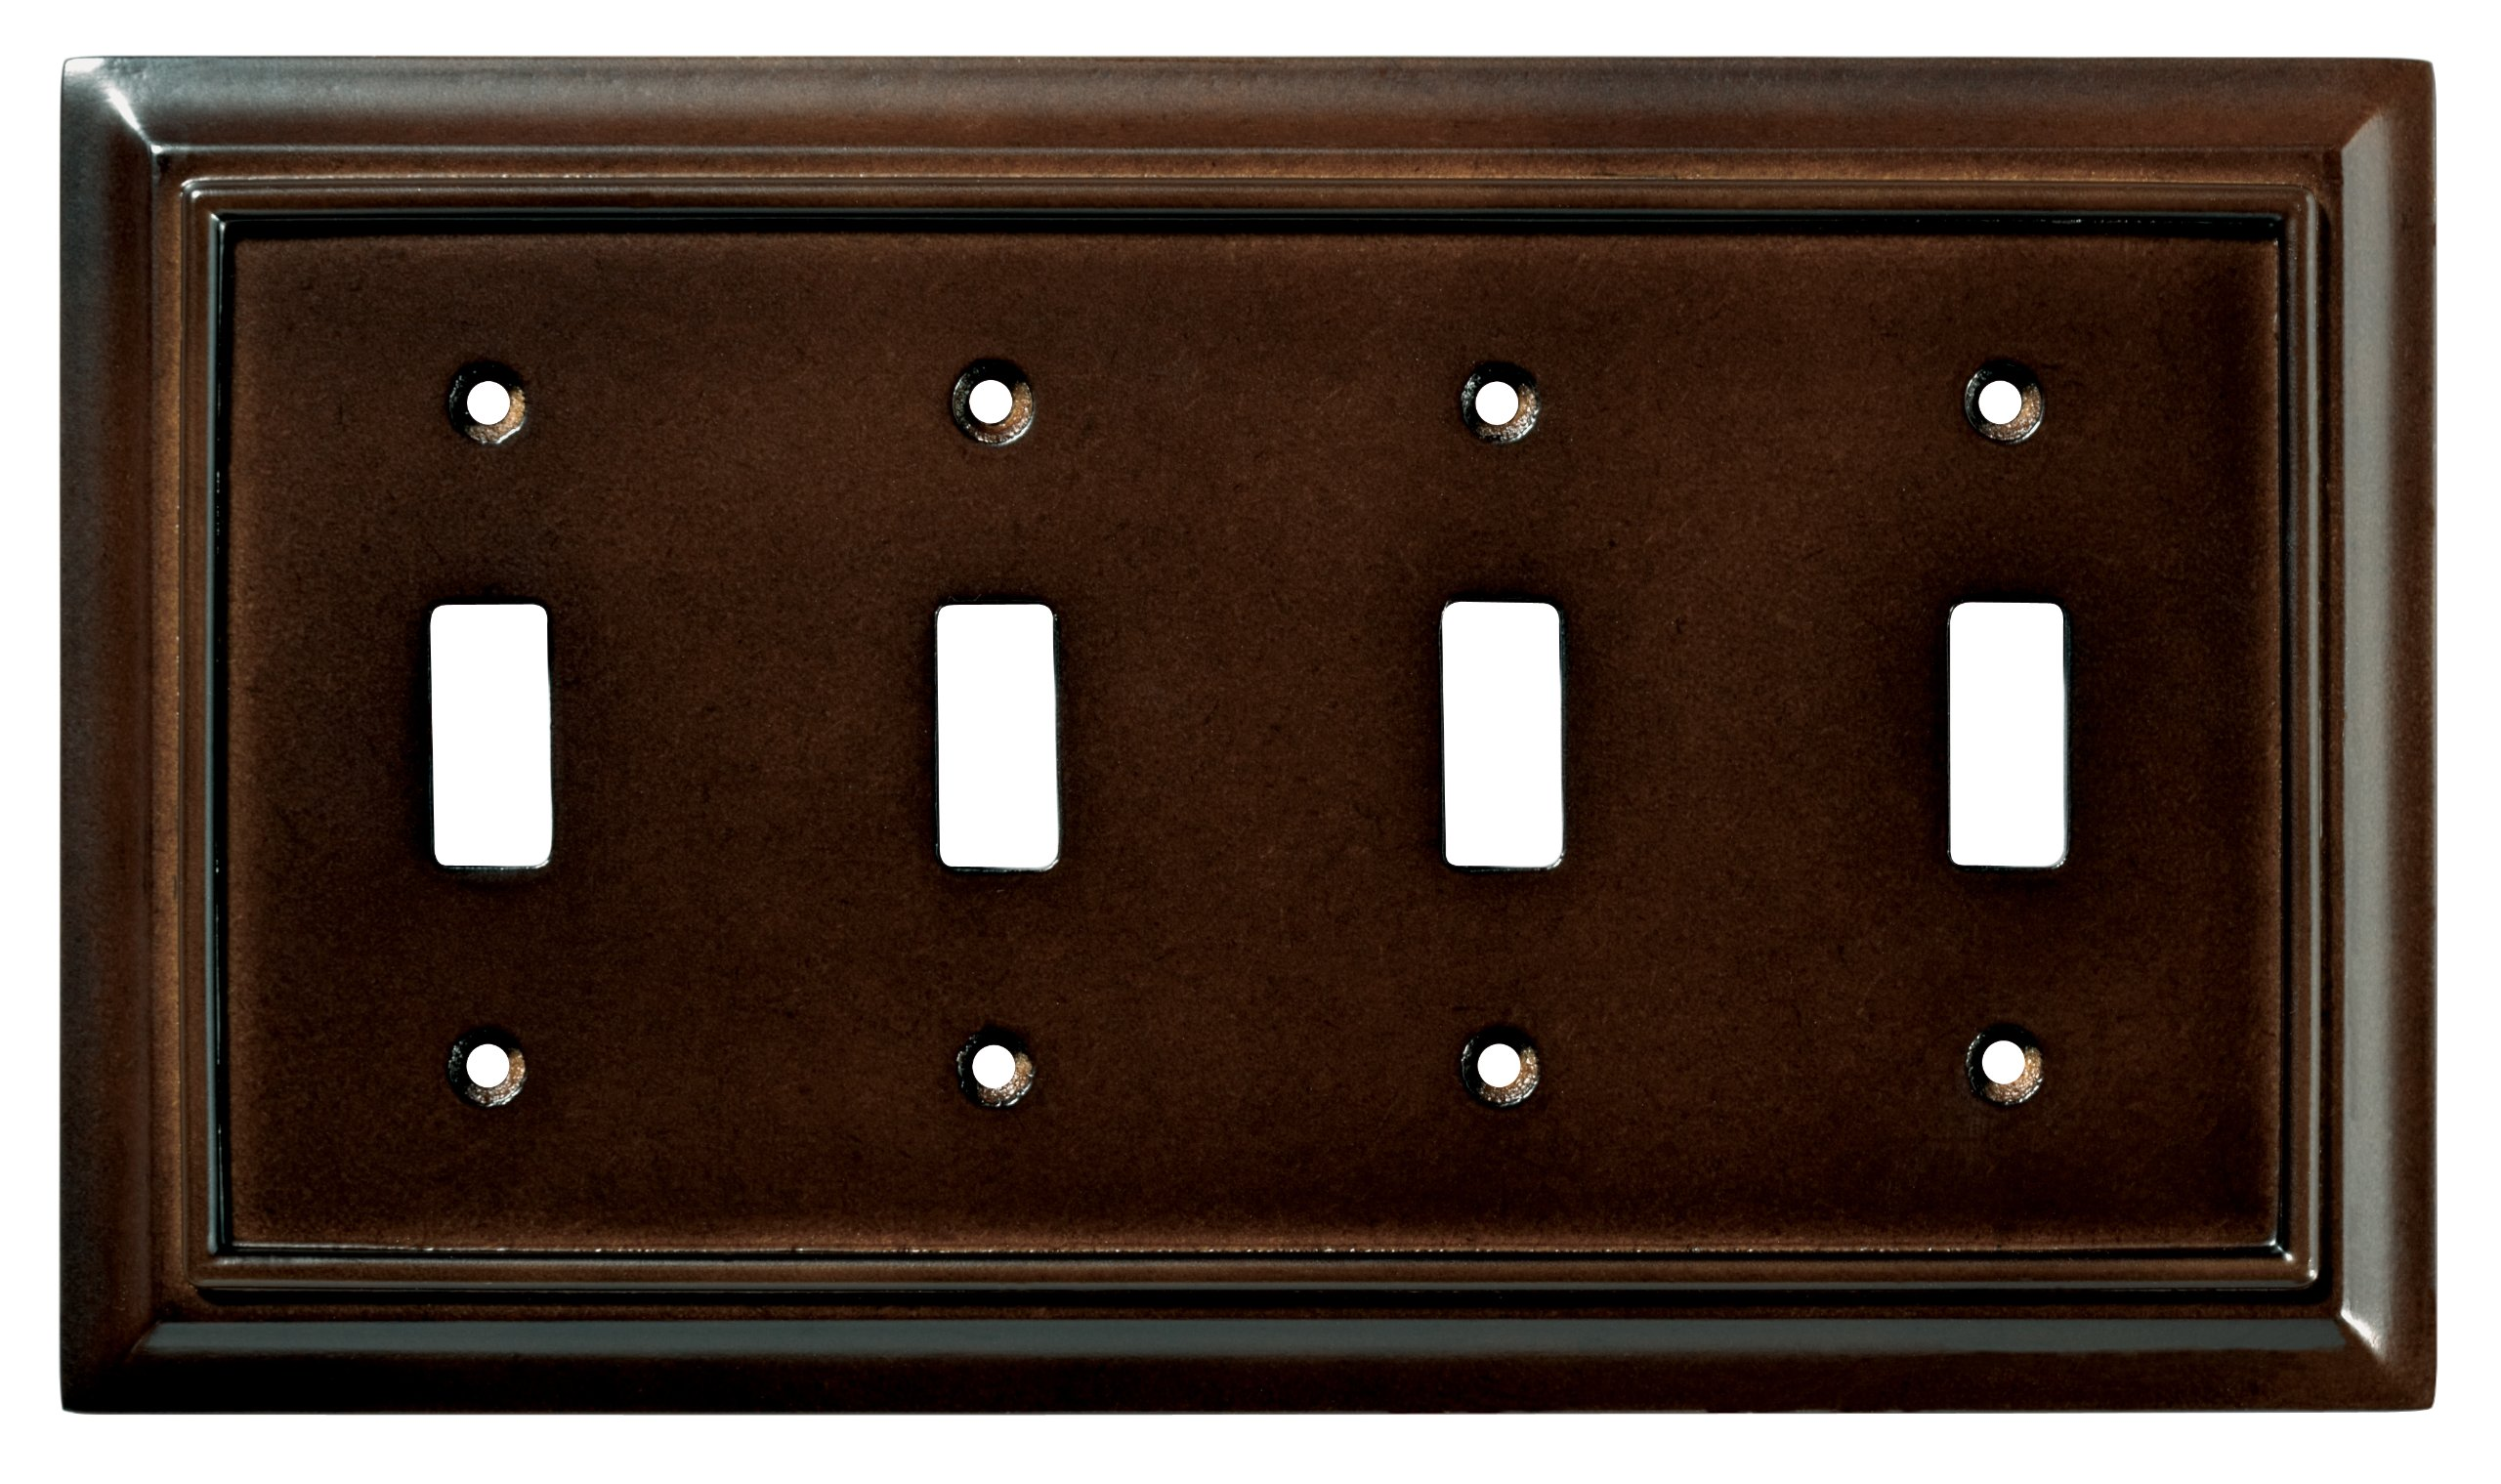 BRAINERD 126345 Wood Architectural Quad Toggle Switch Wall Plate/Switch Plate/Cover, Espresso